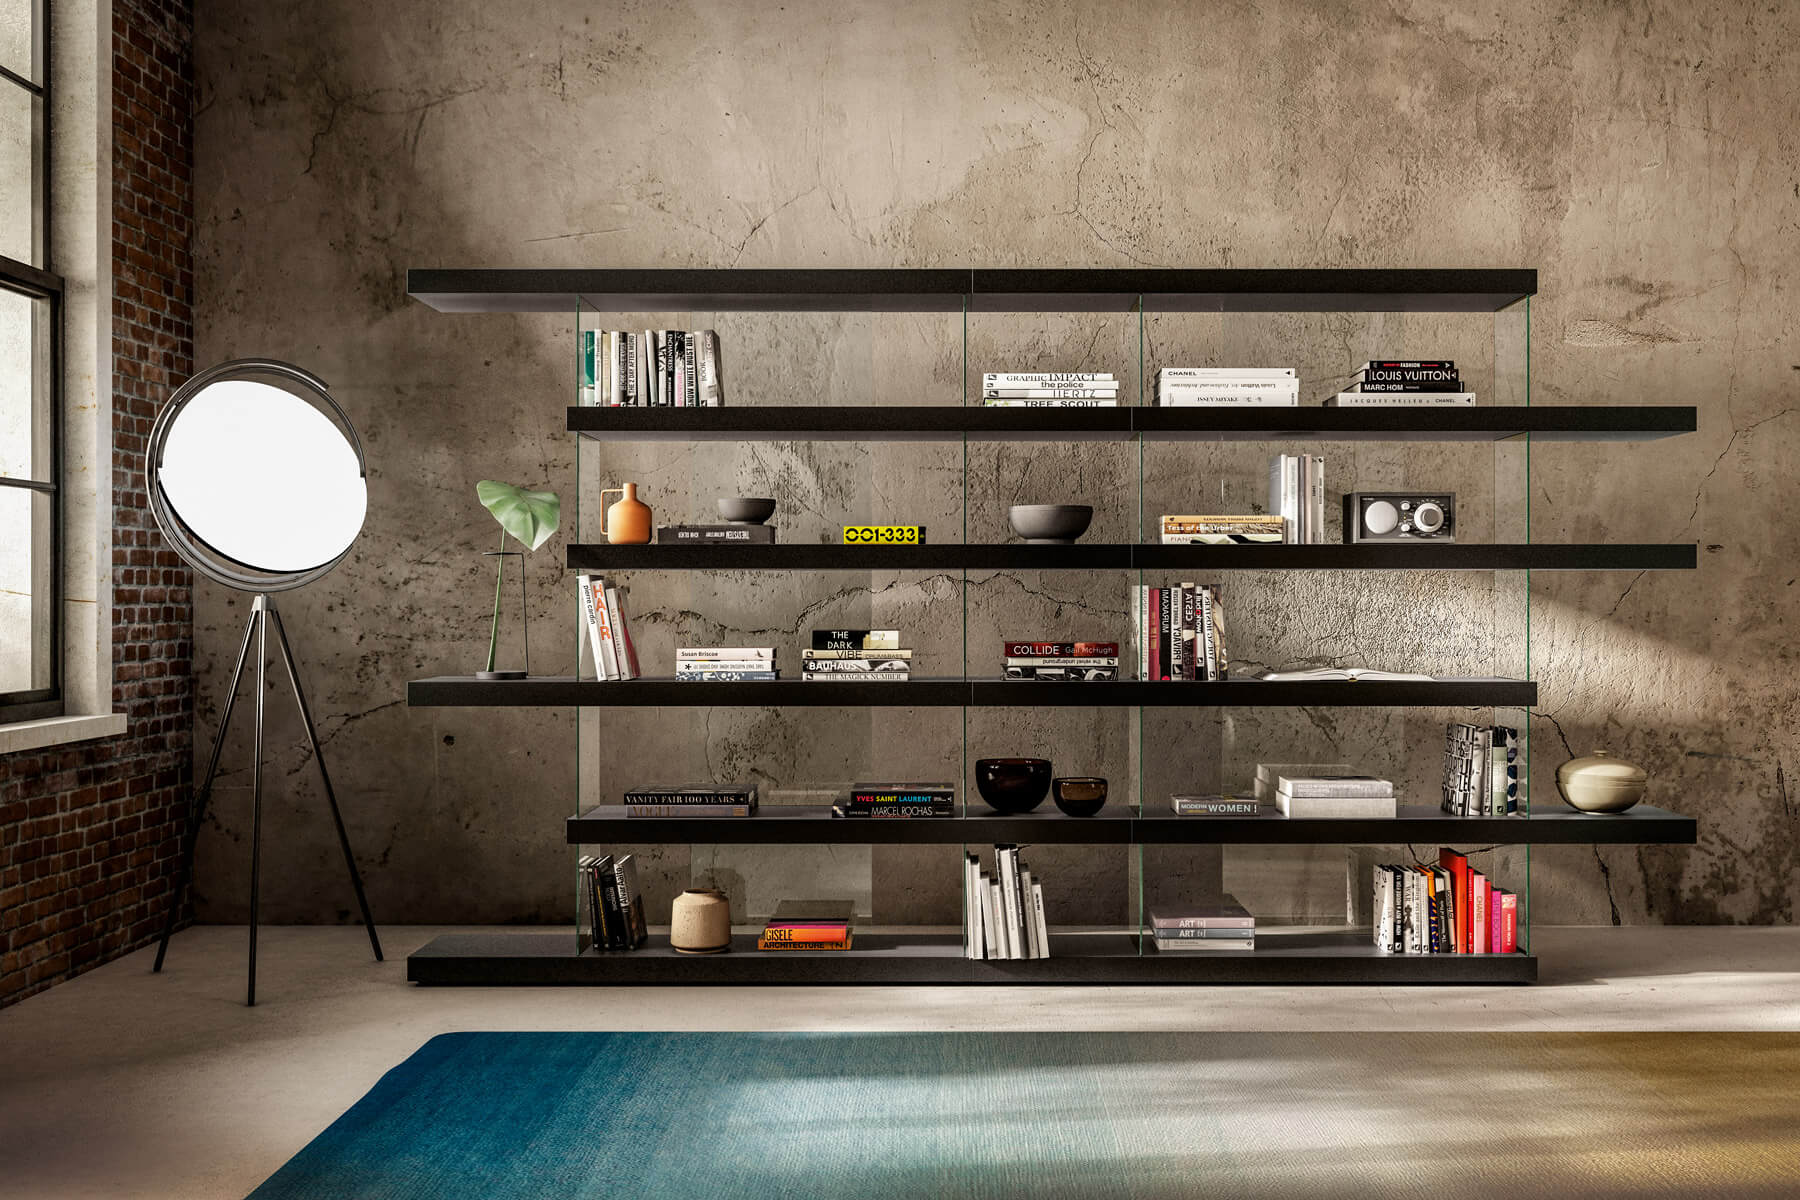 design-shelving